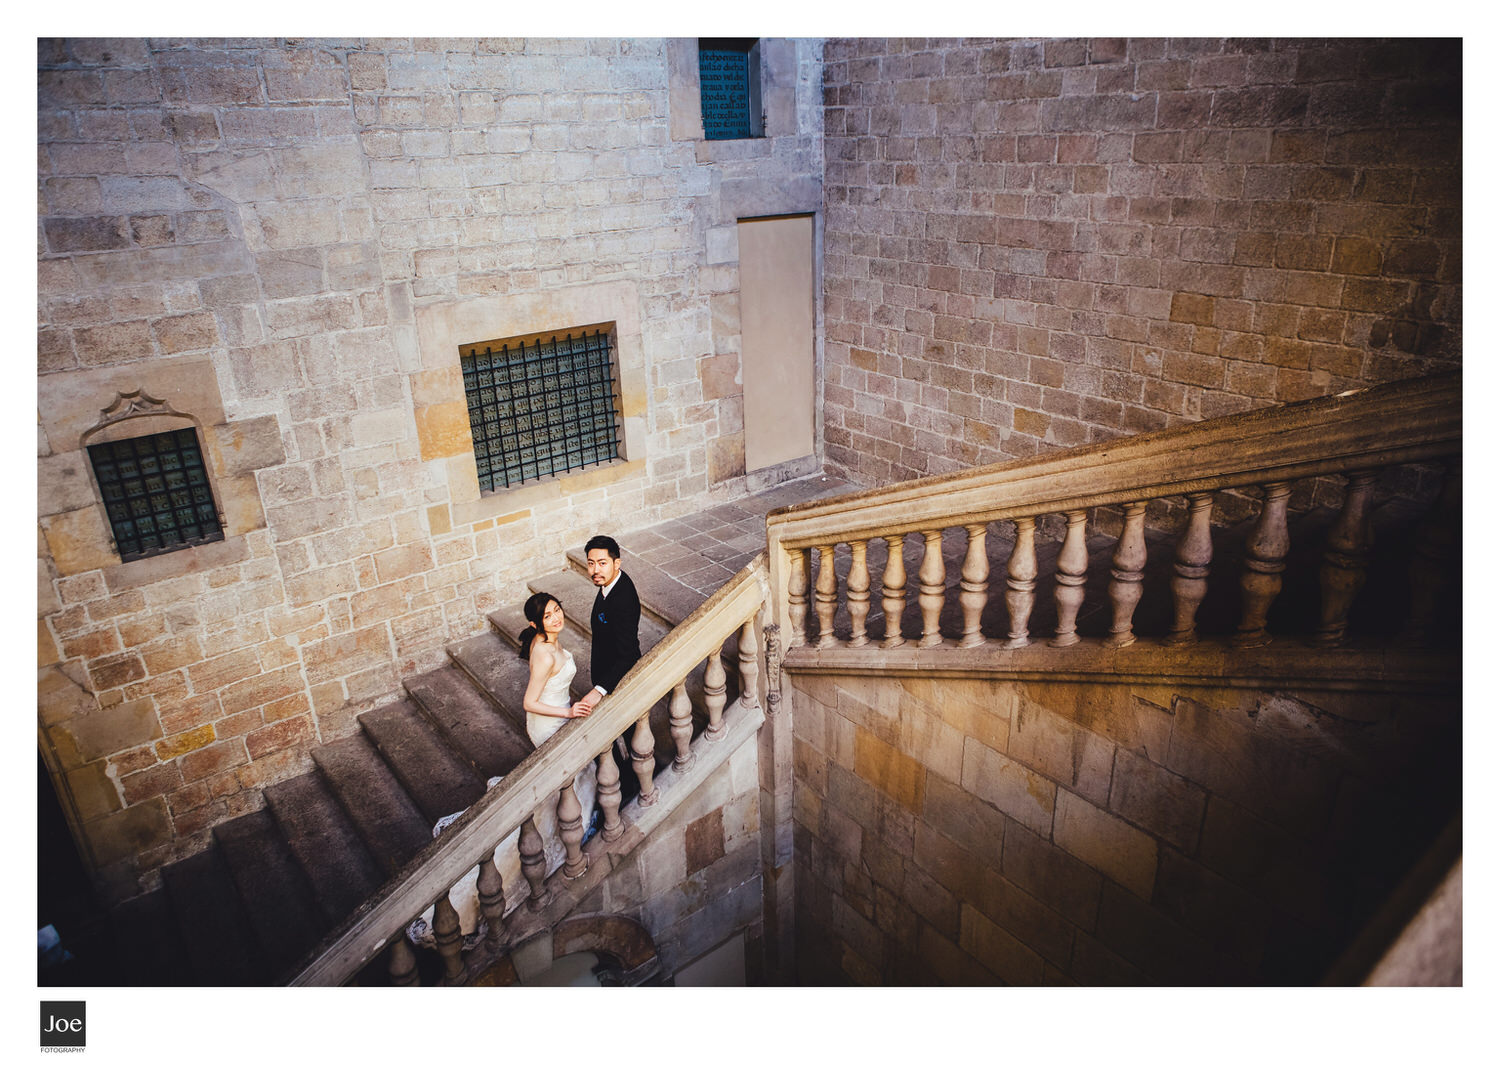 joe-fotography-37-history-museum-barcelona-pre-wedding-liwei.jpg